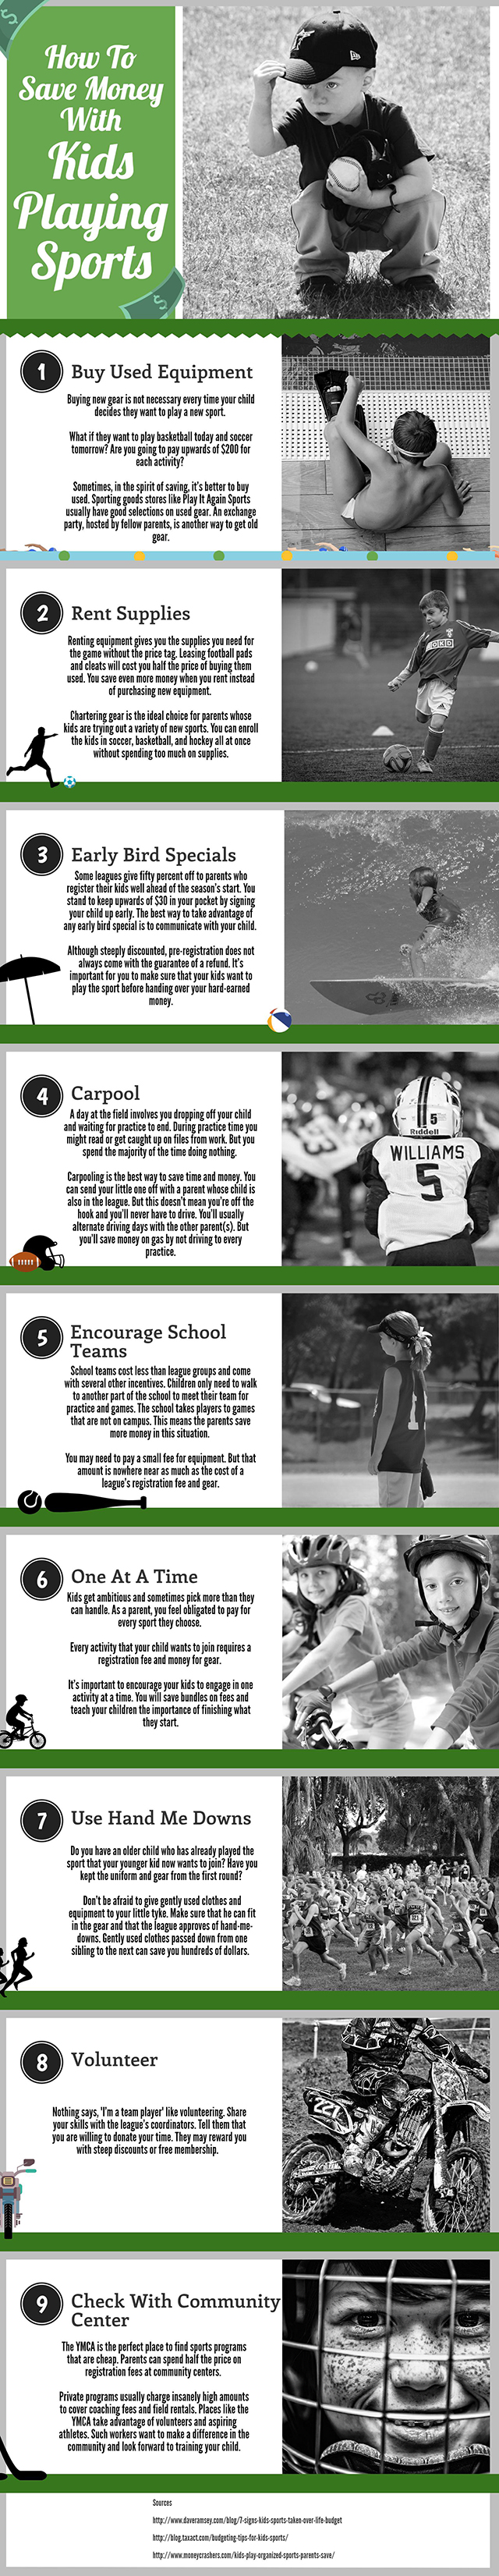 How To Save Money With Kids Playing Sports - Infographic